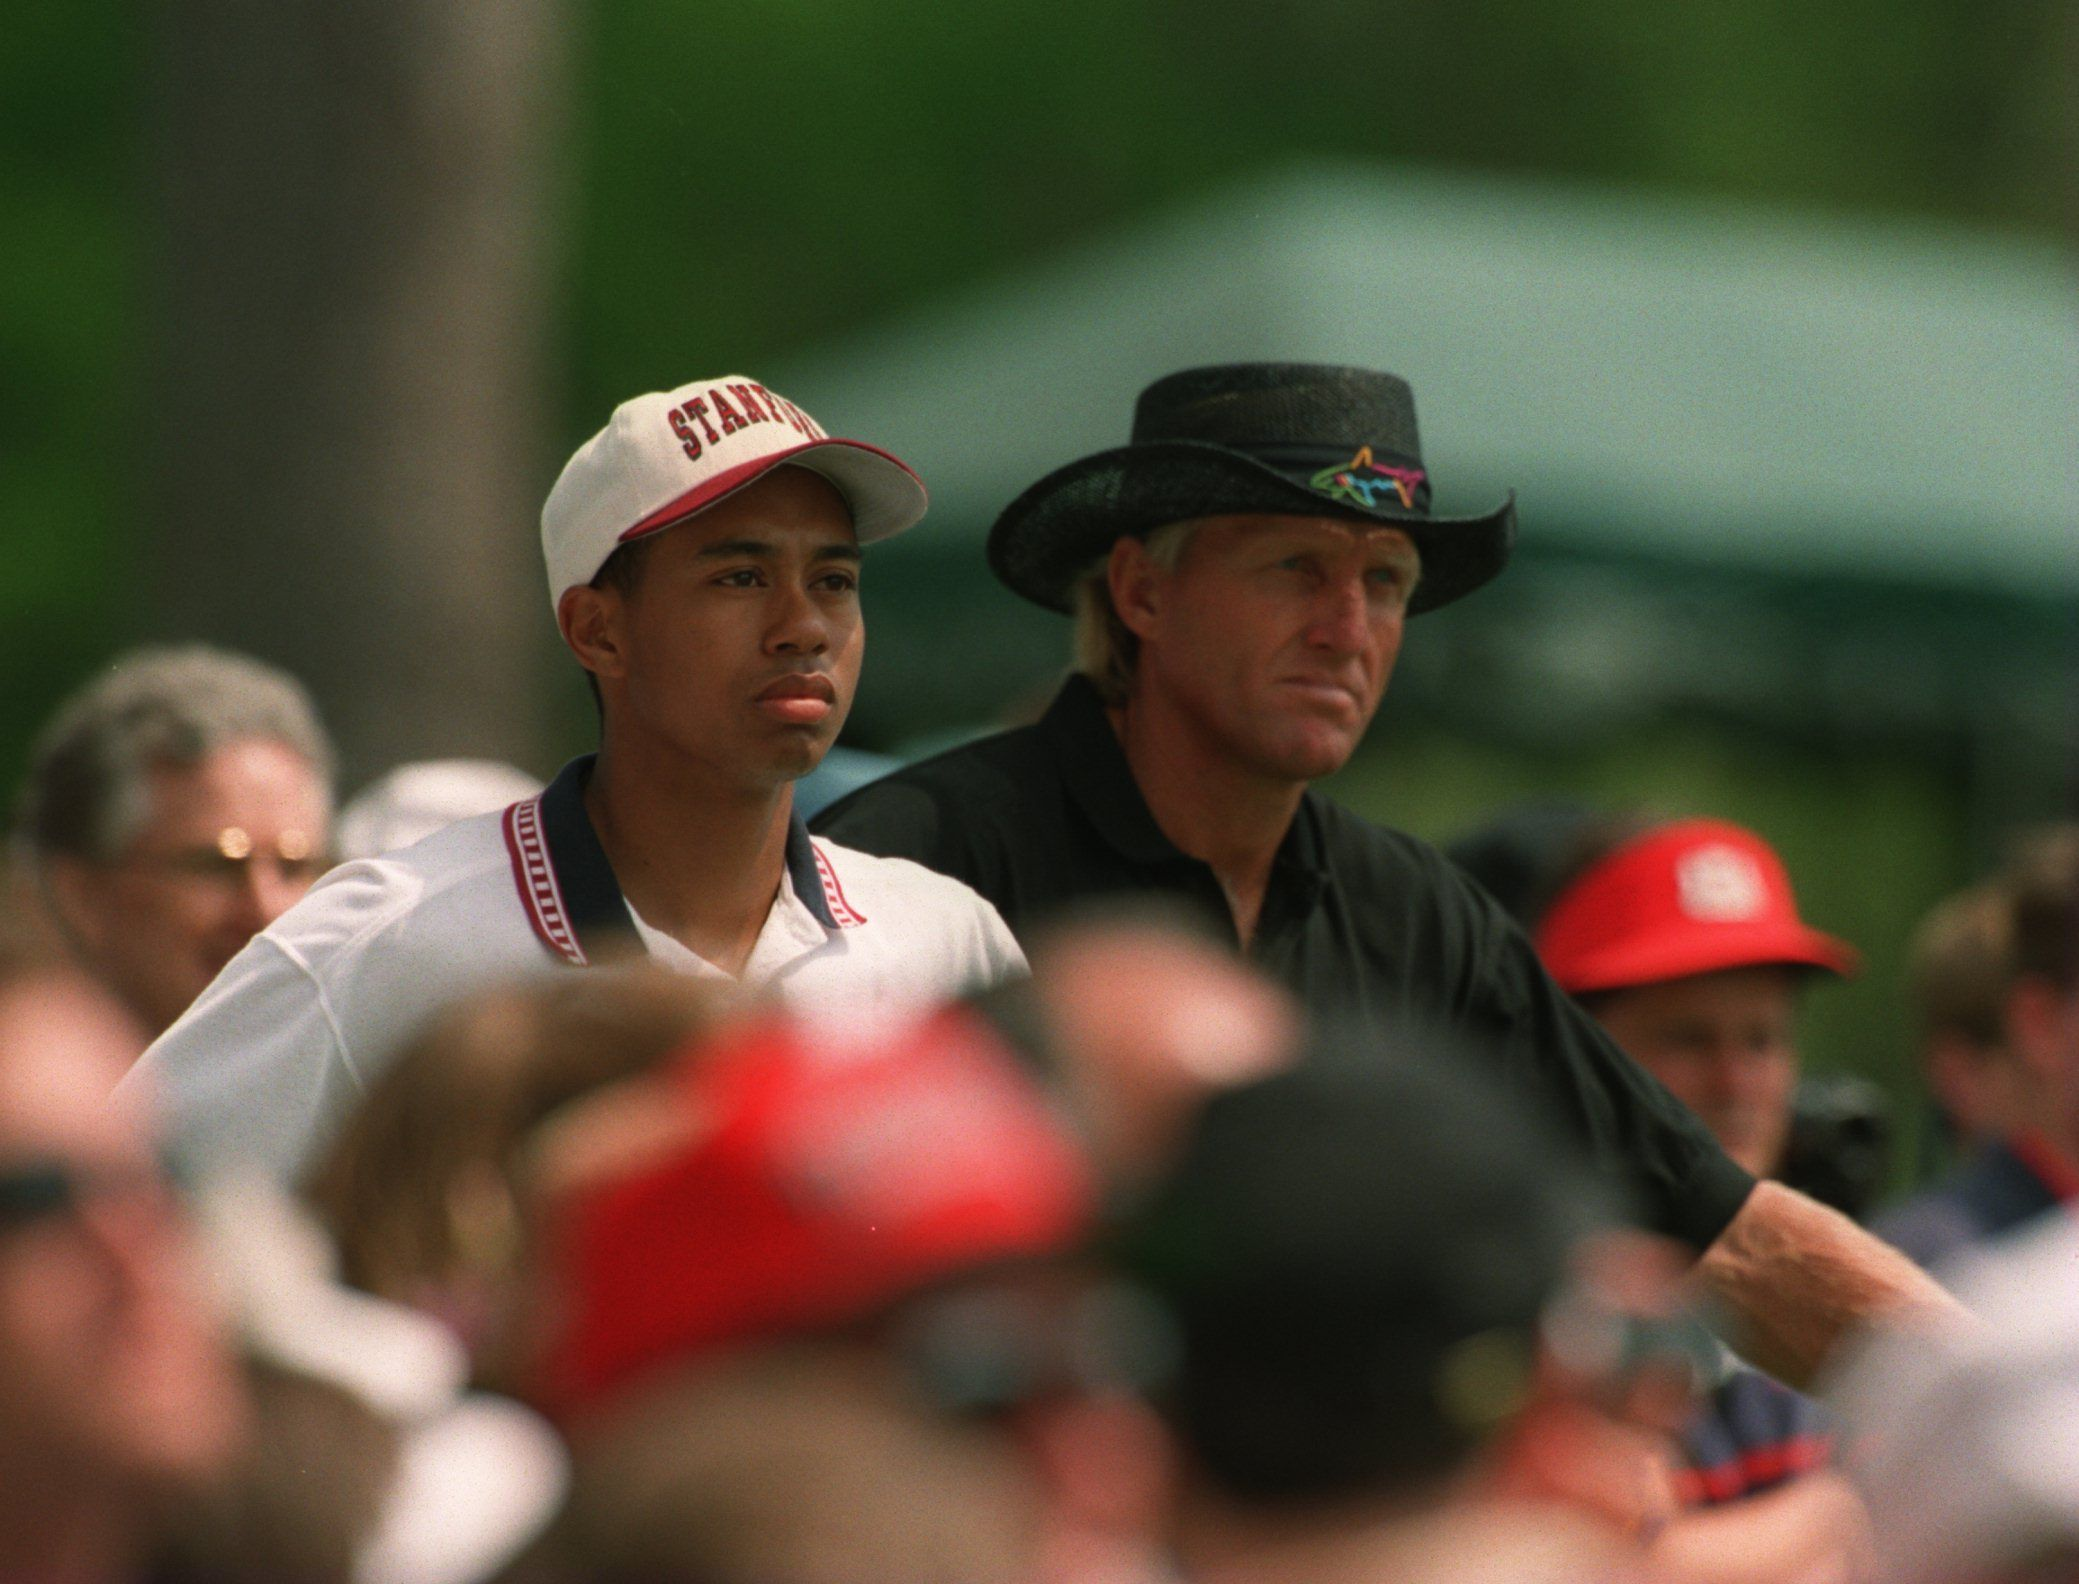 Tiger Woods and Greg Norman back when he was still an amateur player, at the 1995 U.S. Masters Golf Championship. | Source: Getty Images